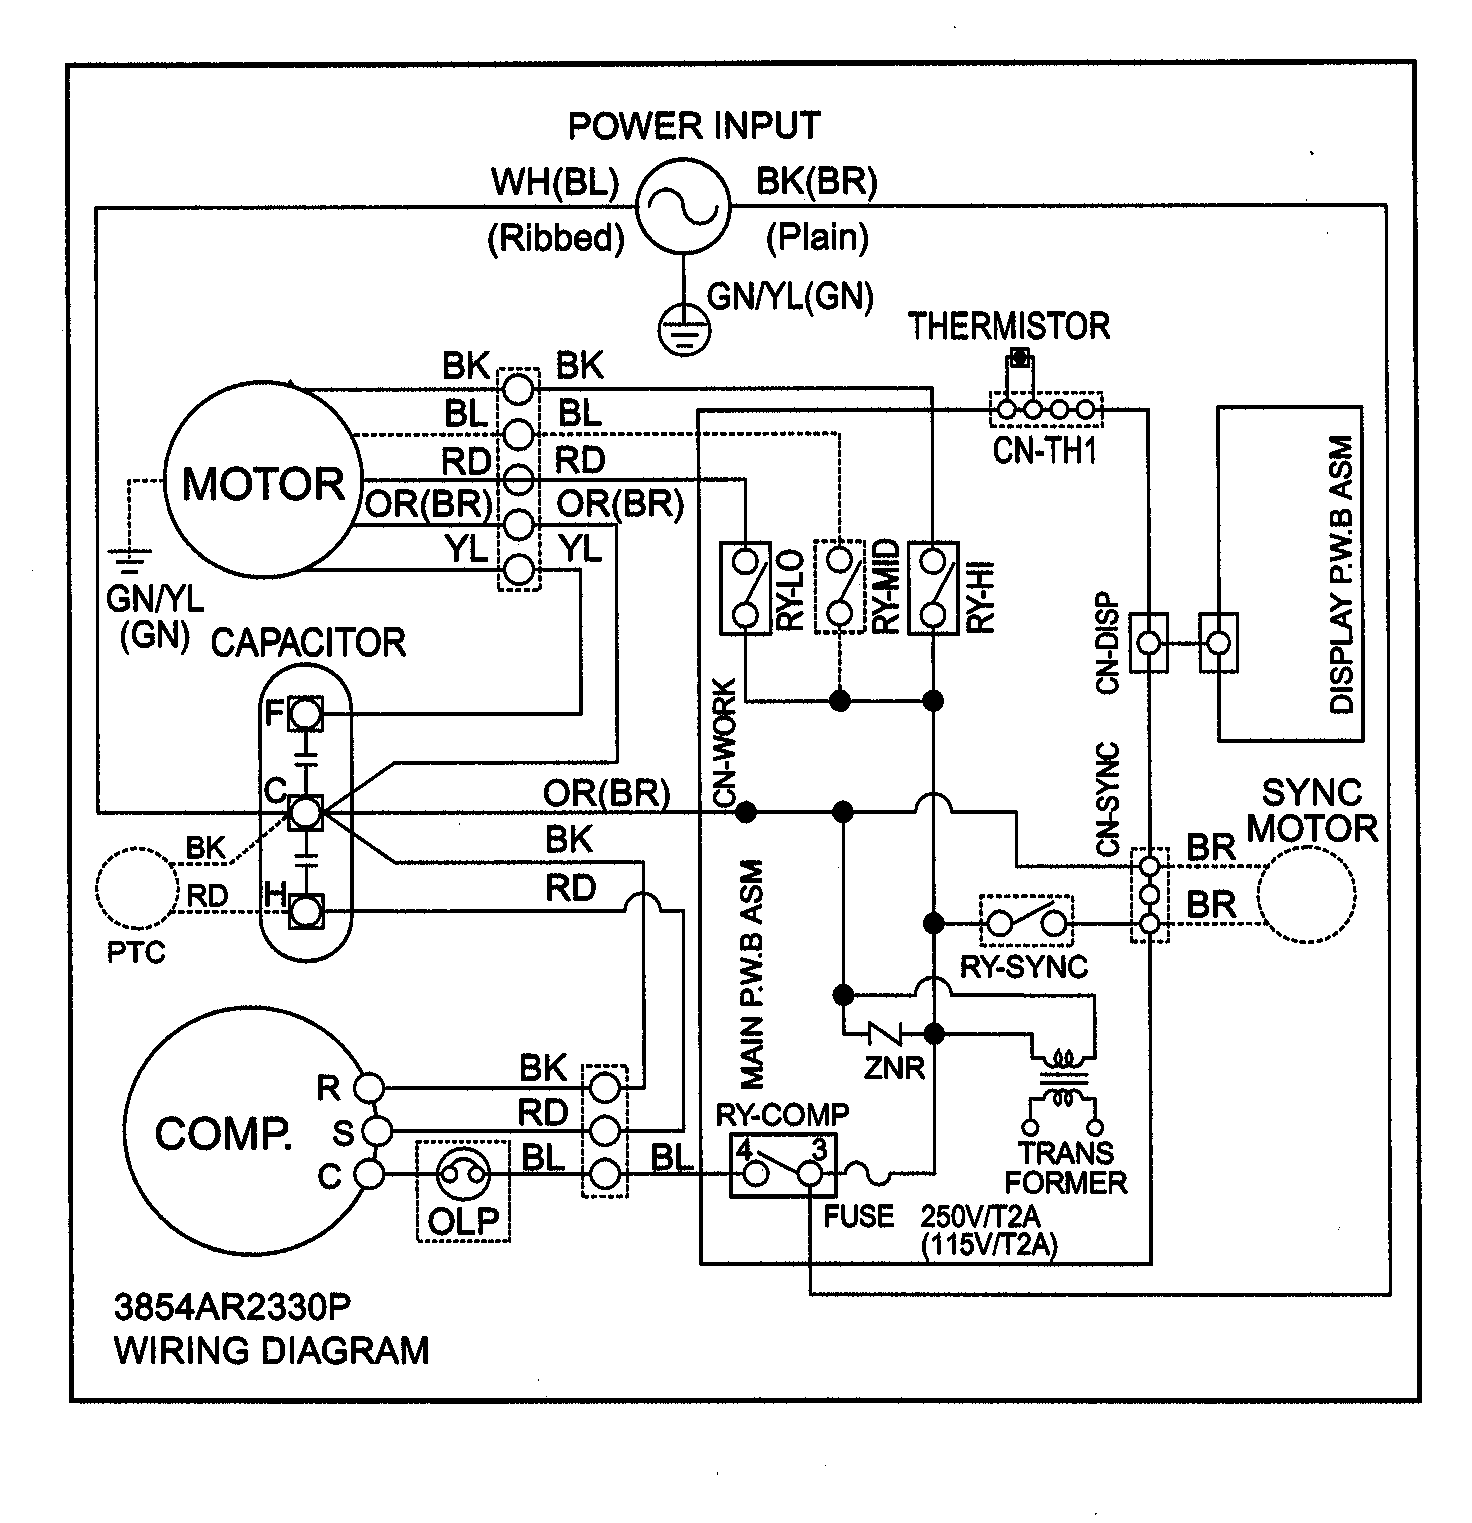 Window Ac Csr Wiring Diagram $ Www.apktodownload.com